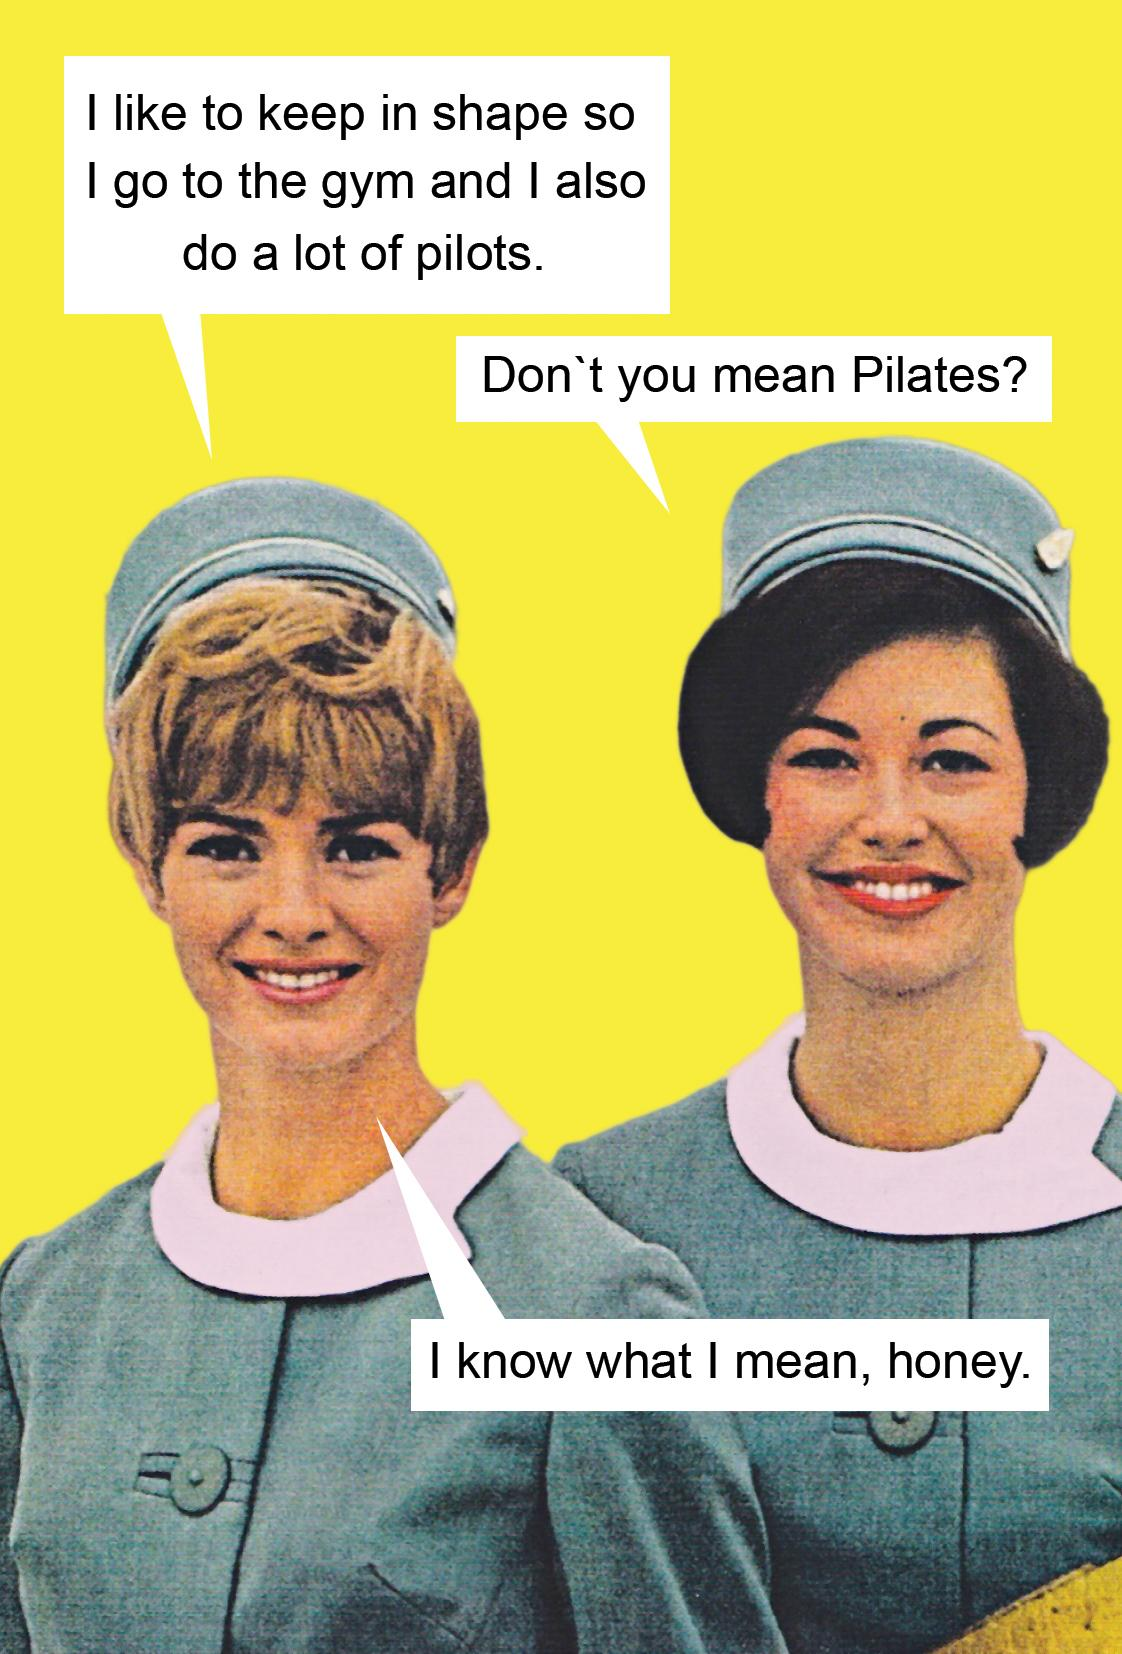 I like to keep in shape so I go to the gym and also I do a lot of pilots. Don't you mean Pilates? I know what I mean, honey.